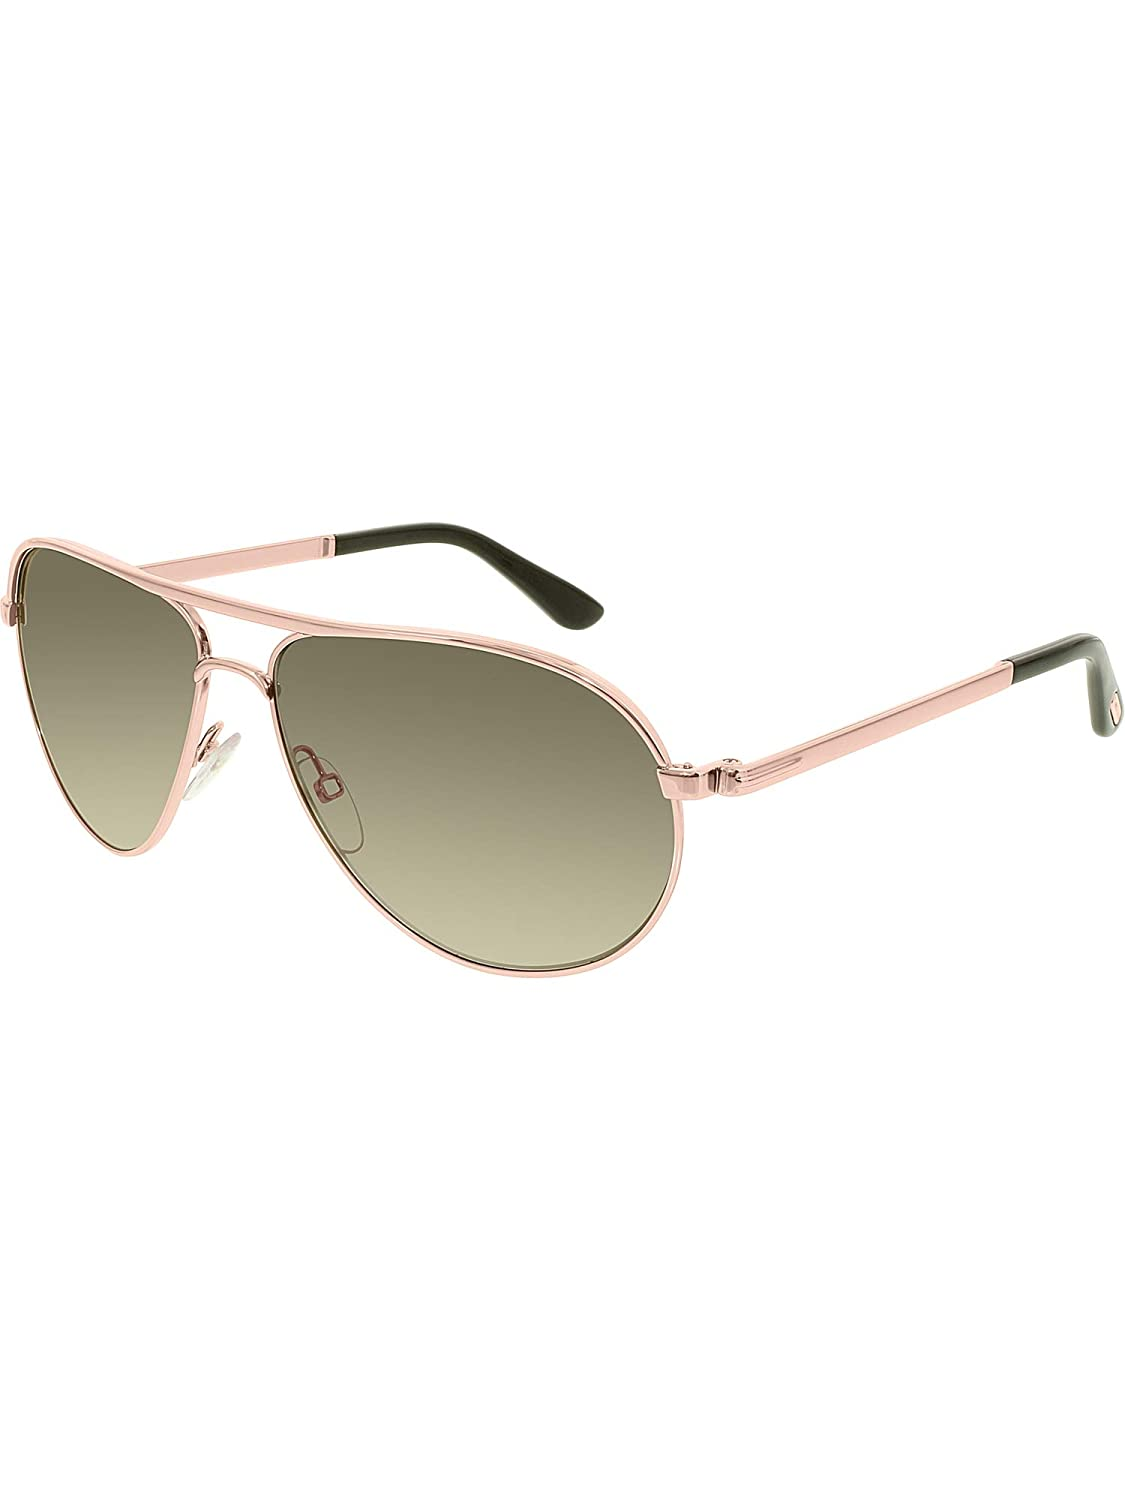 61c3d02782 Amazon.com  Tom Ford Men FT0144 MARKO Rose Gold Grey Sunglasses 58mm  Tom  Ford  Clothing